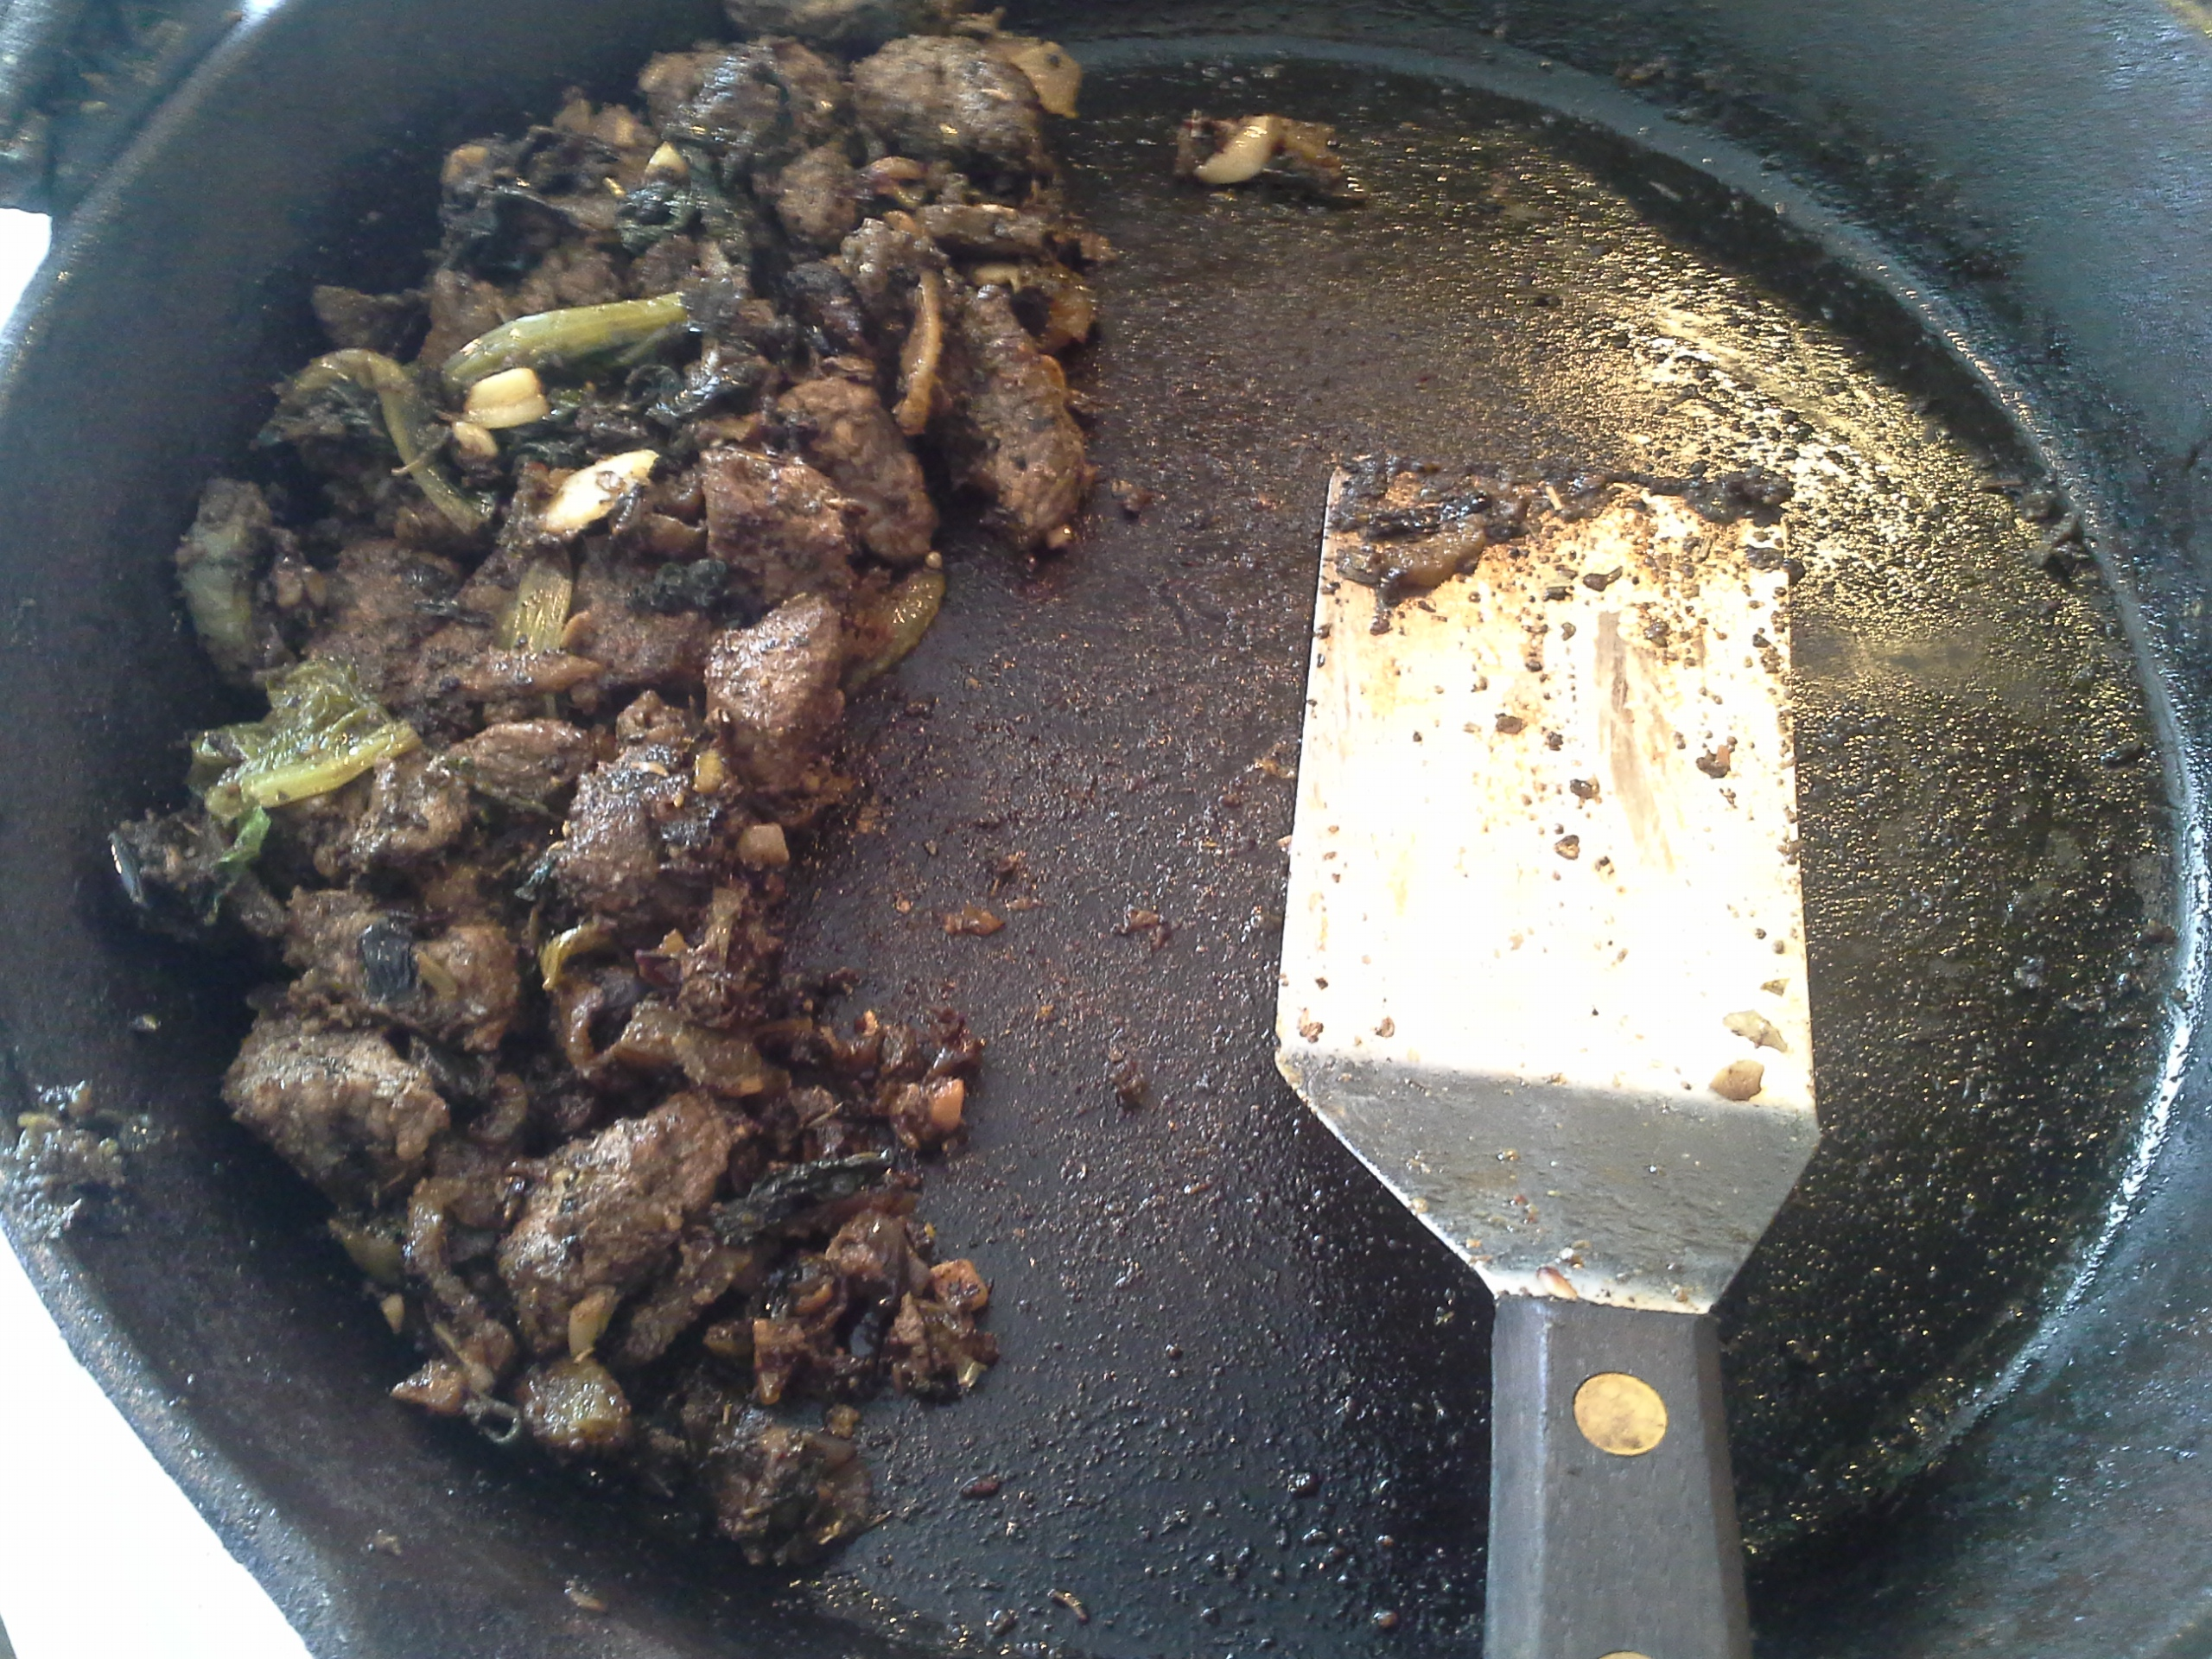 Beef, 3 large leaves of mystery CSA greens, 1/2 daikon radish?, 1/2 red onion, 4 cloves garlic, 2 Tbsp. coconut oil, herbs & spices